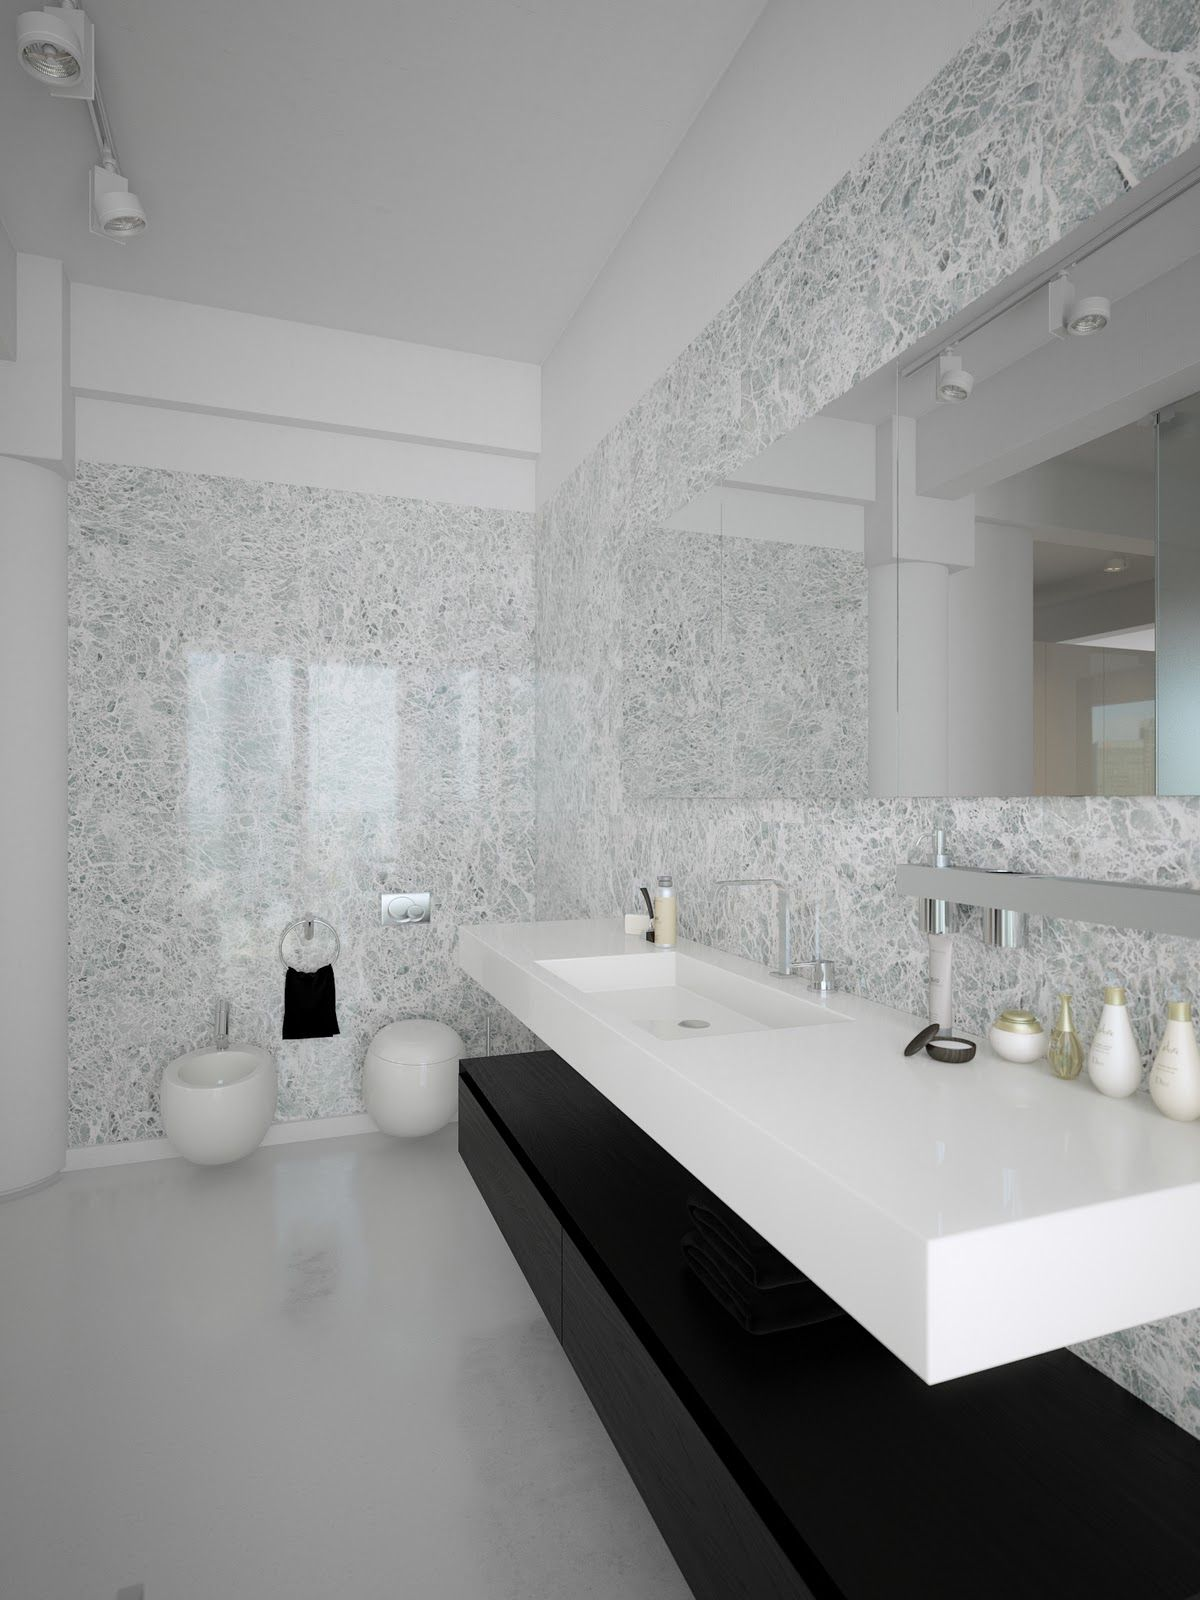 Coolest minimalist modern bathroom design contemporary for Black and white bathroom sets